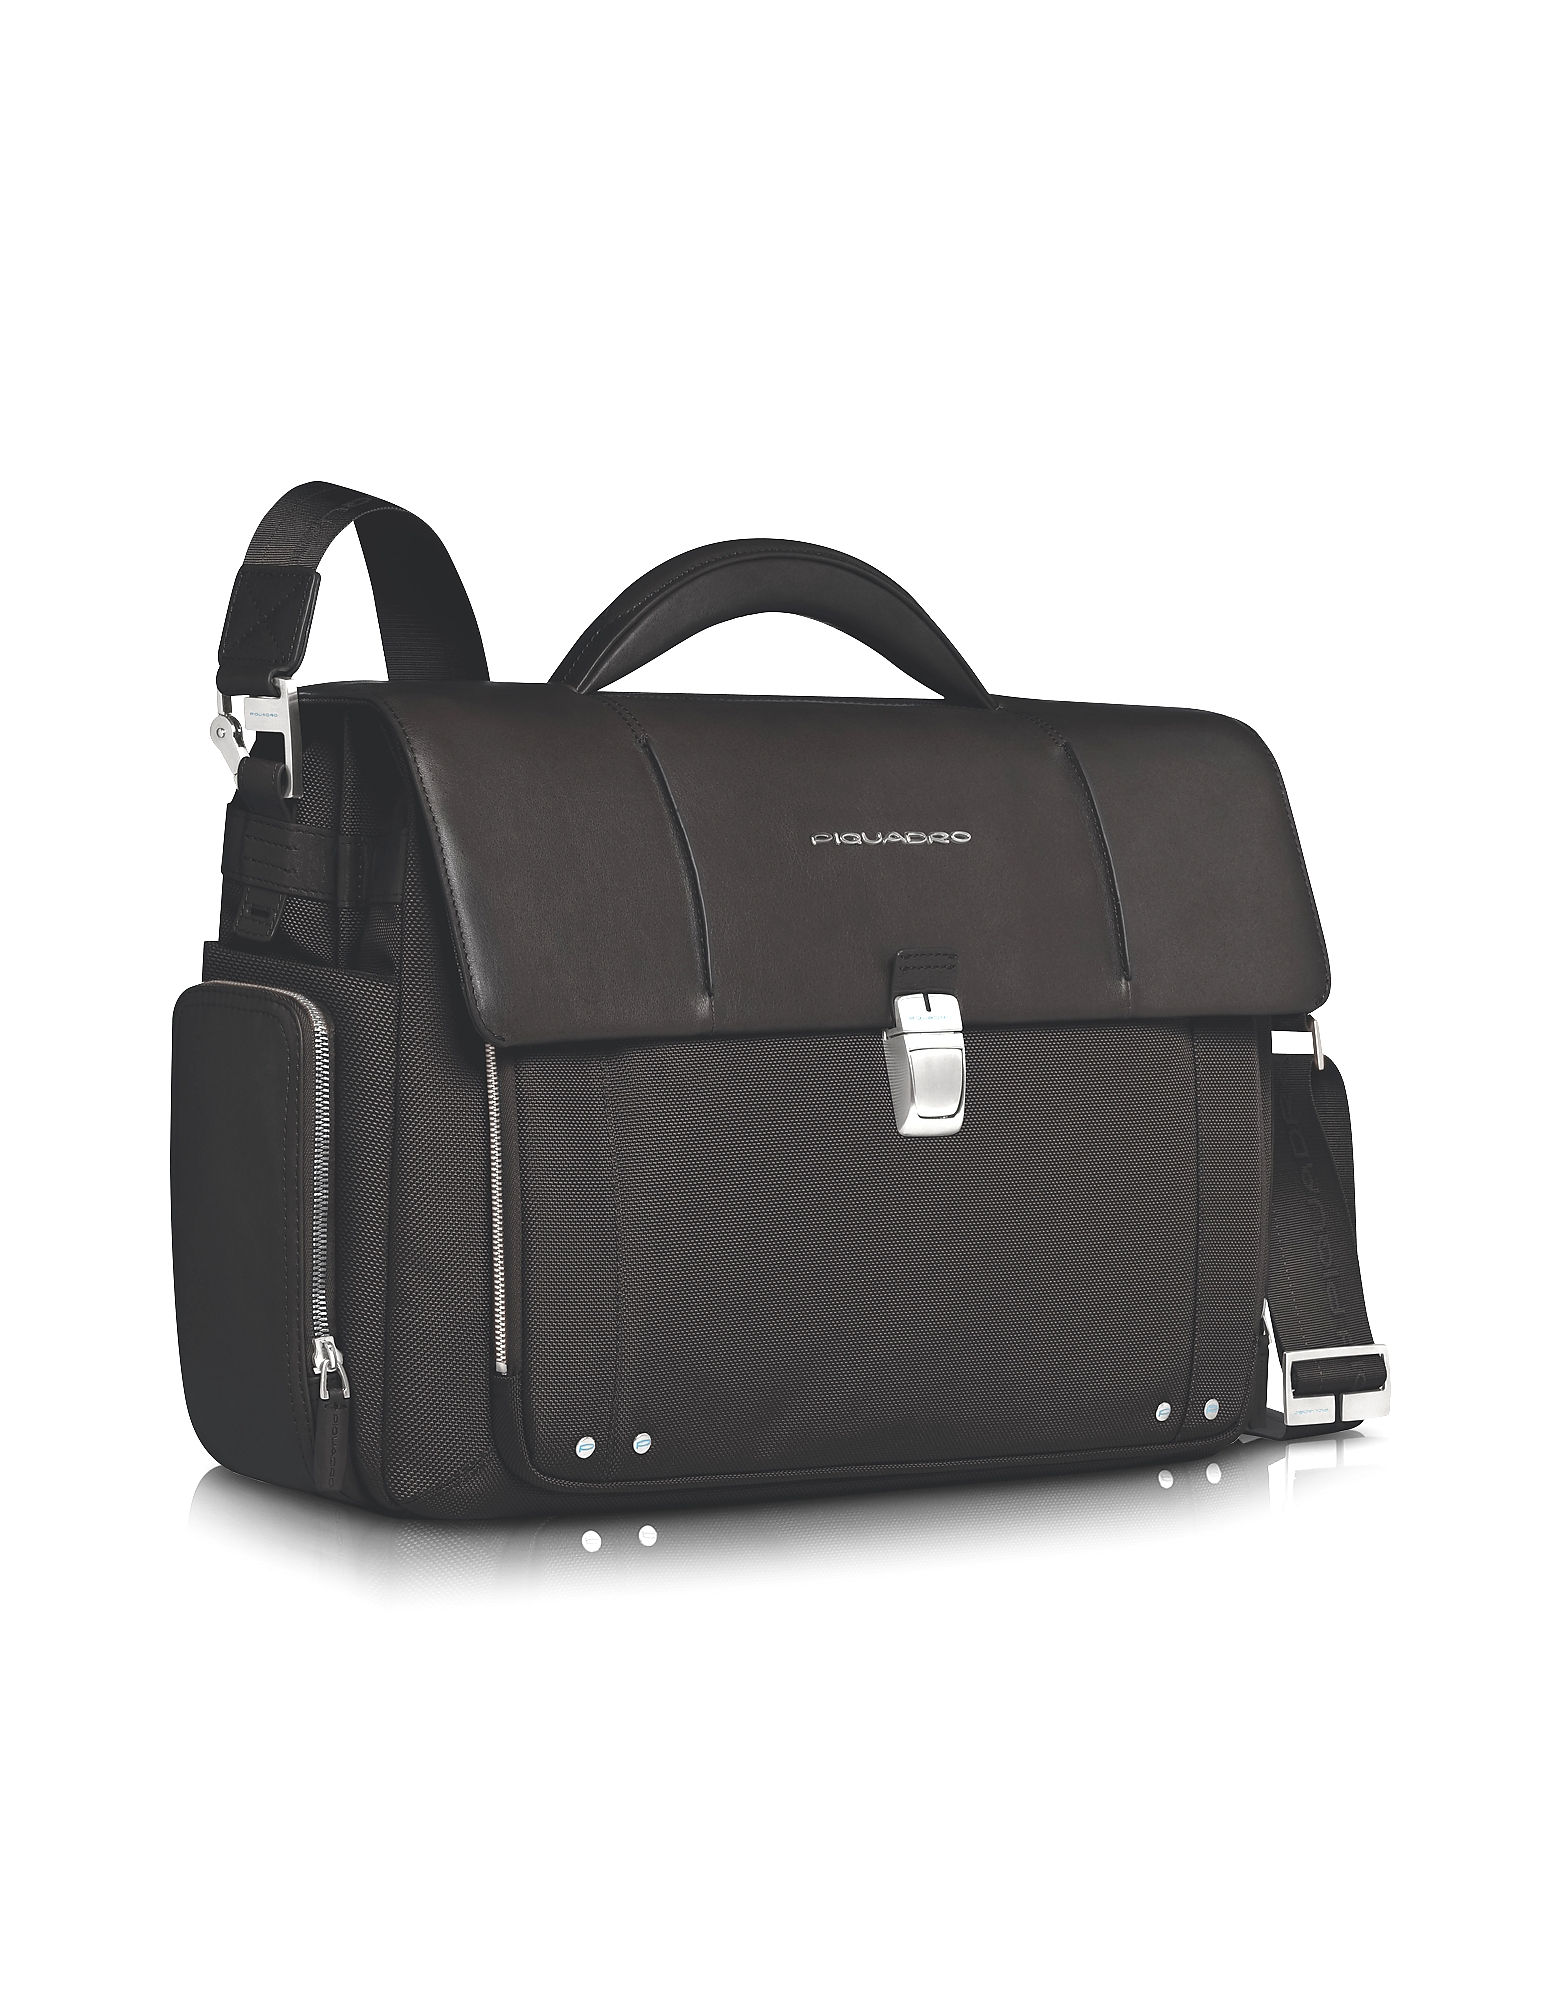 Piquadro Briefcases, Link - Front Pocket Double Gusset 15